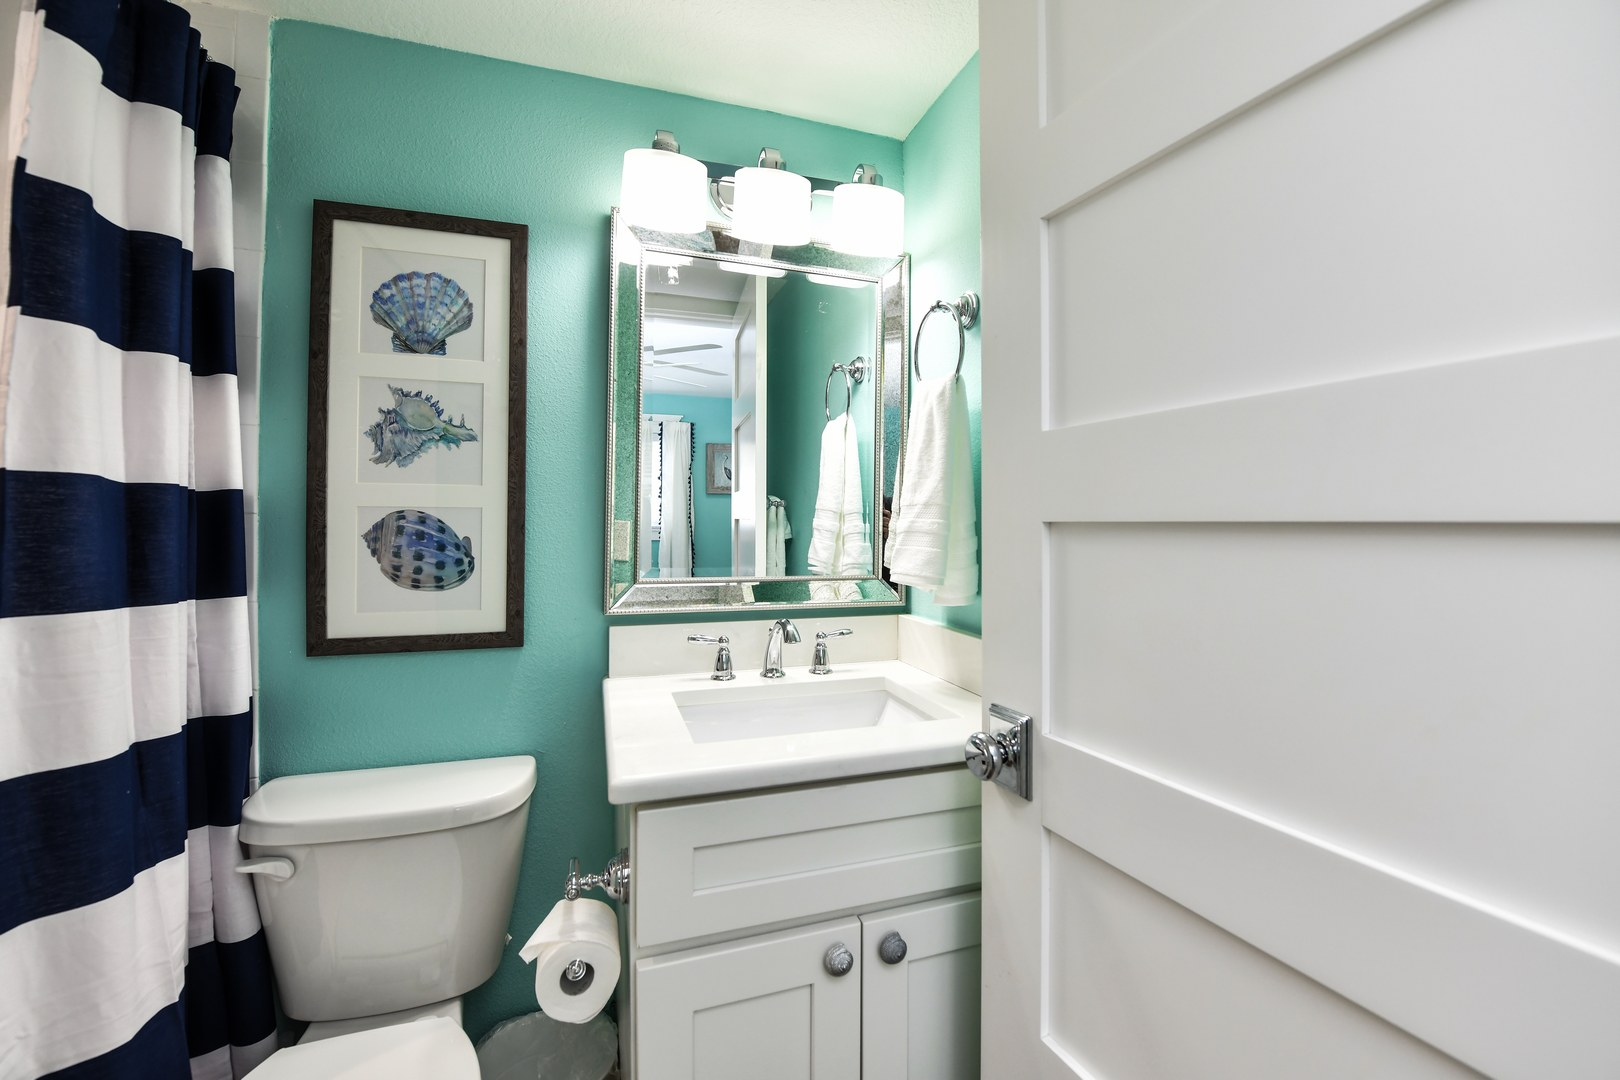 Master Bathroom 2 - Vanity and Commode